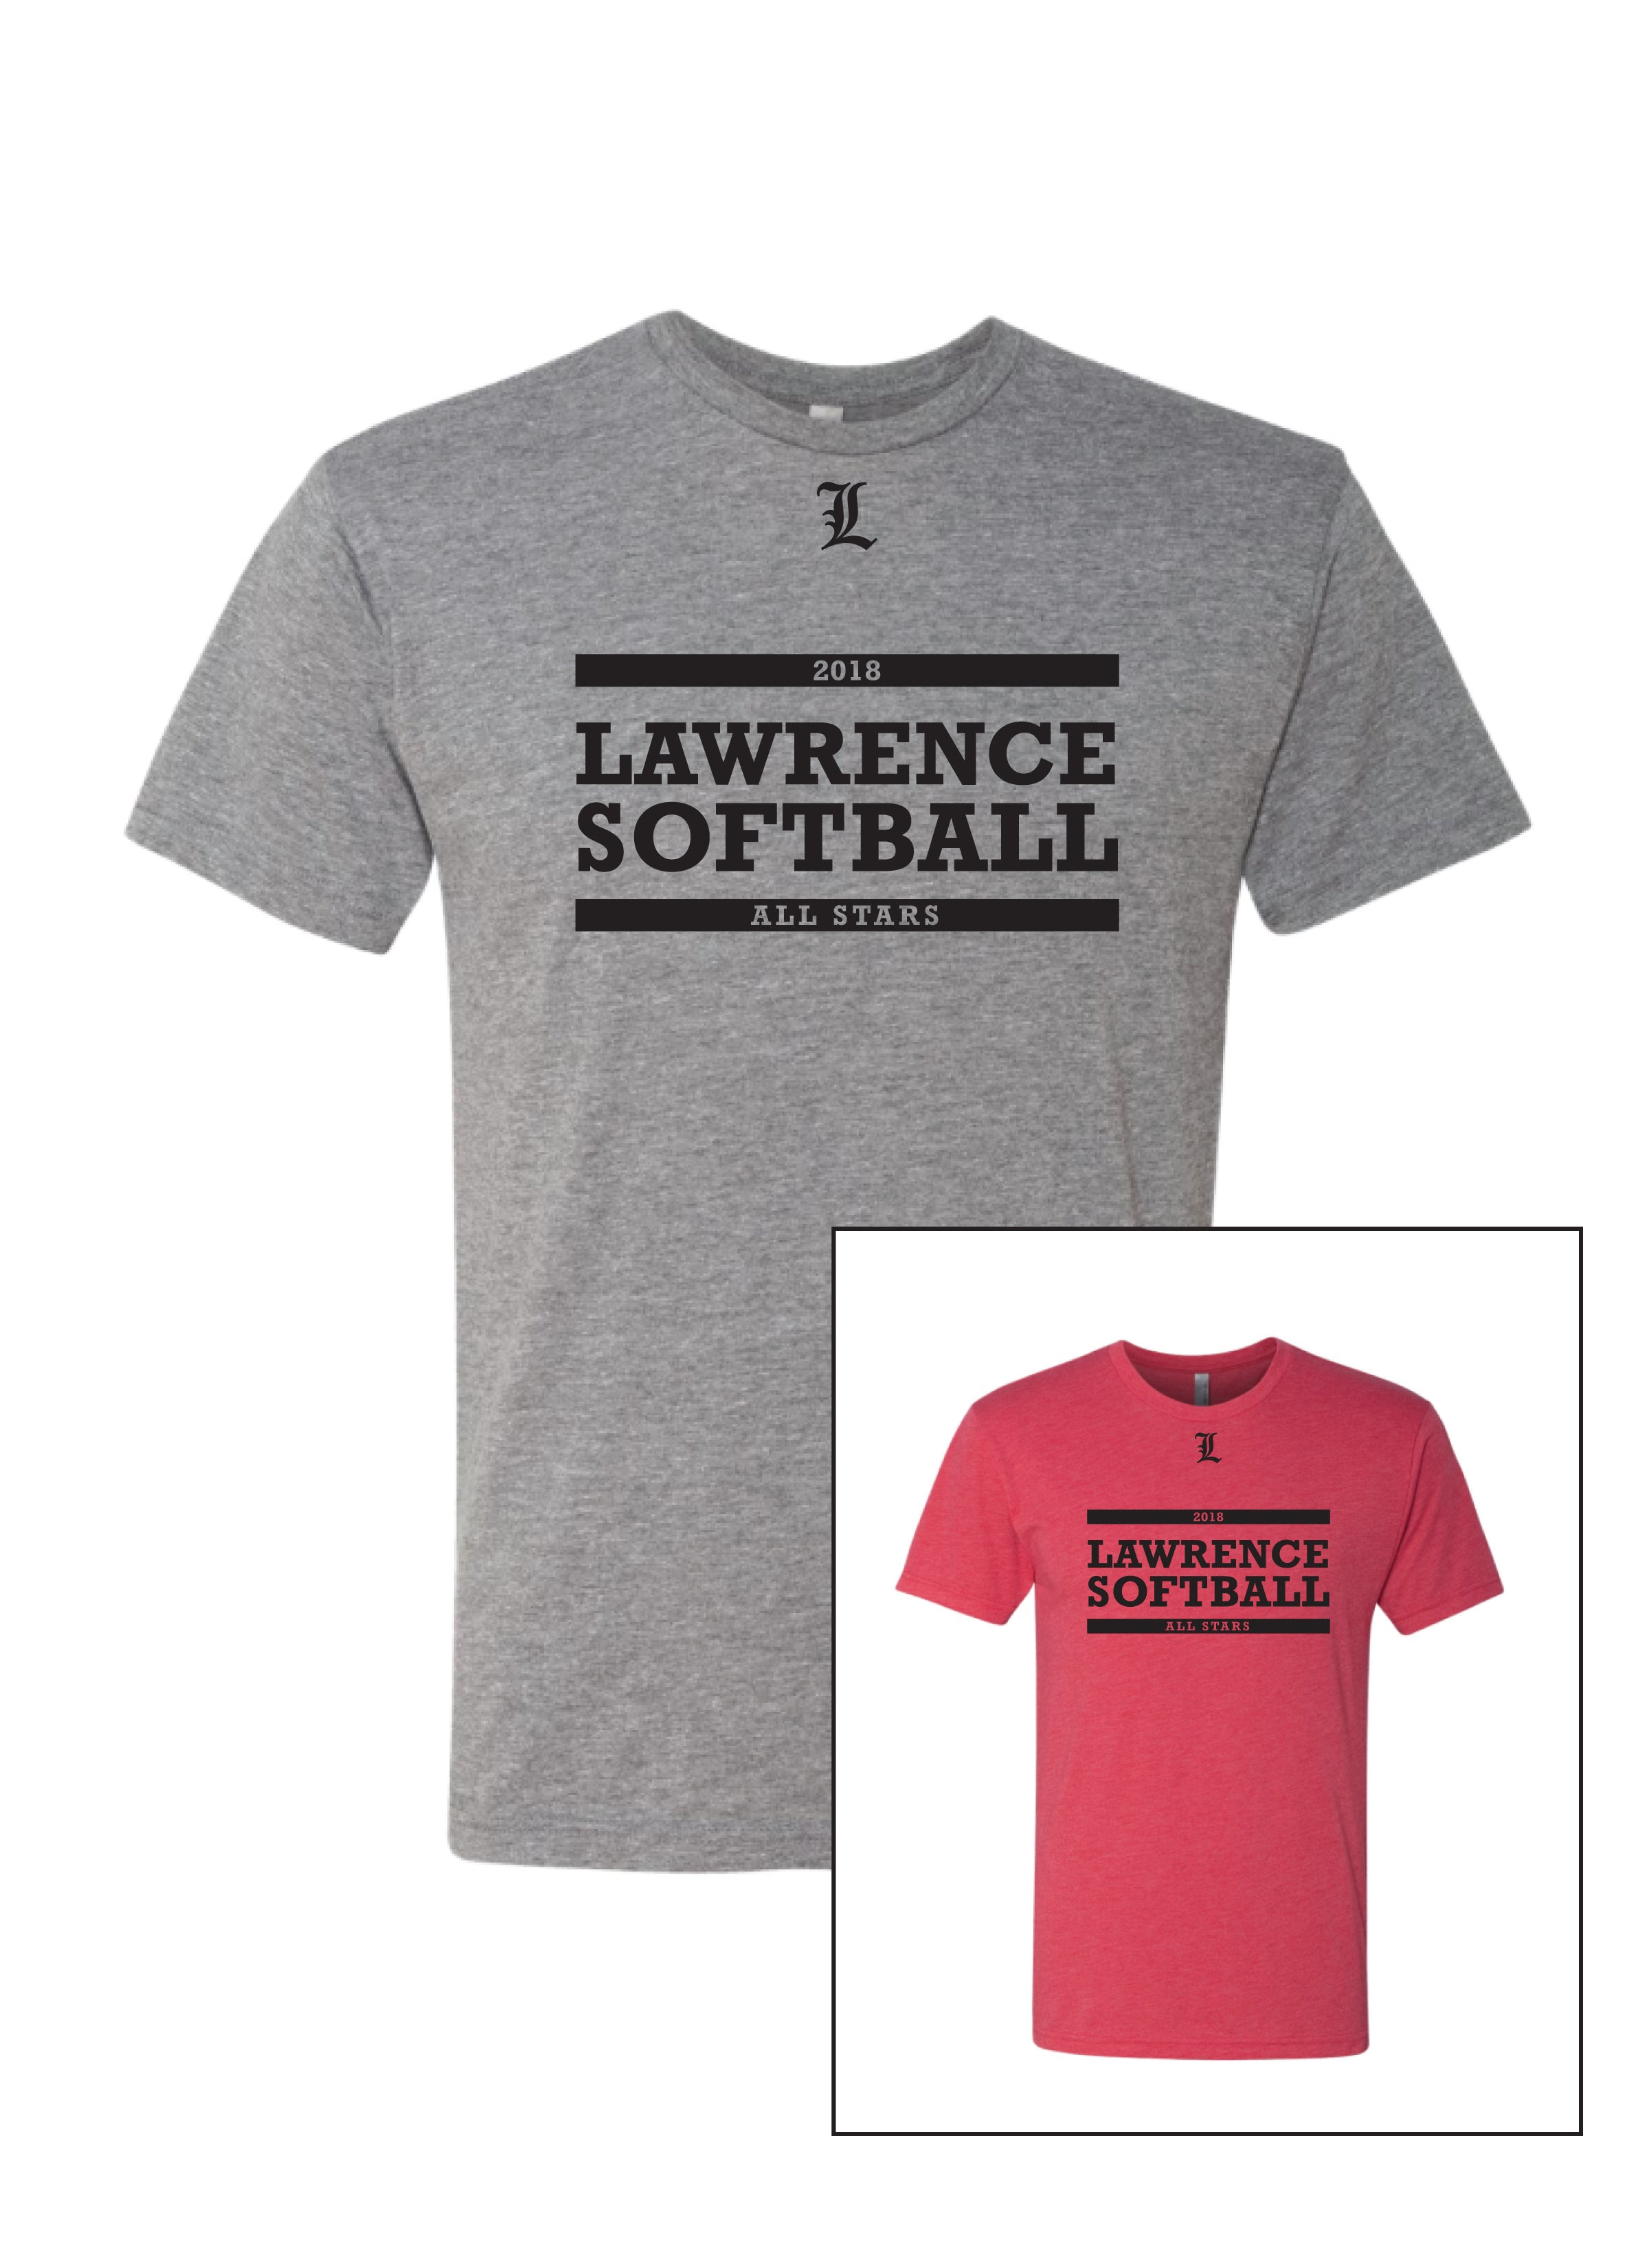 Lawrence Softball Unisex Triblend Crew Tee